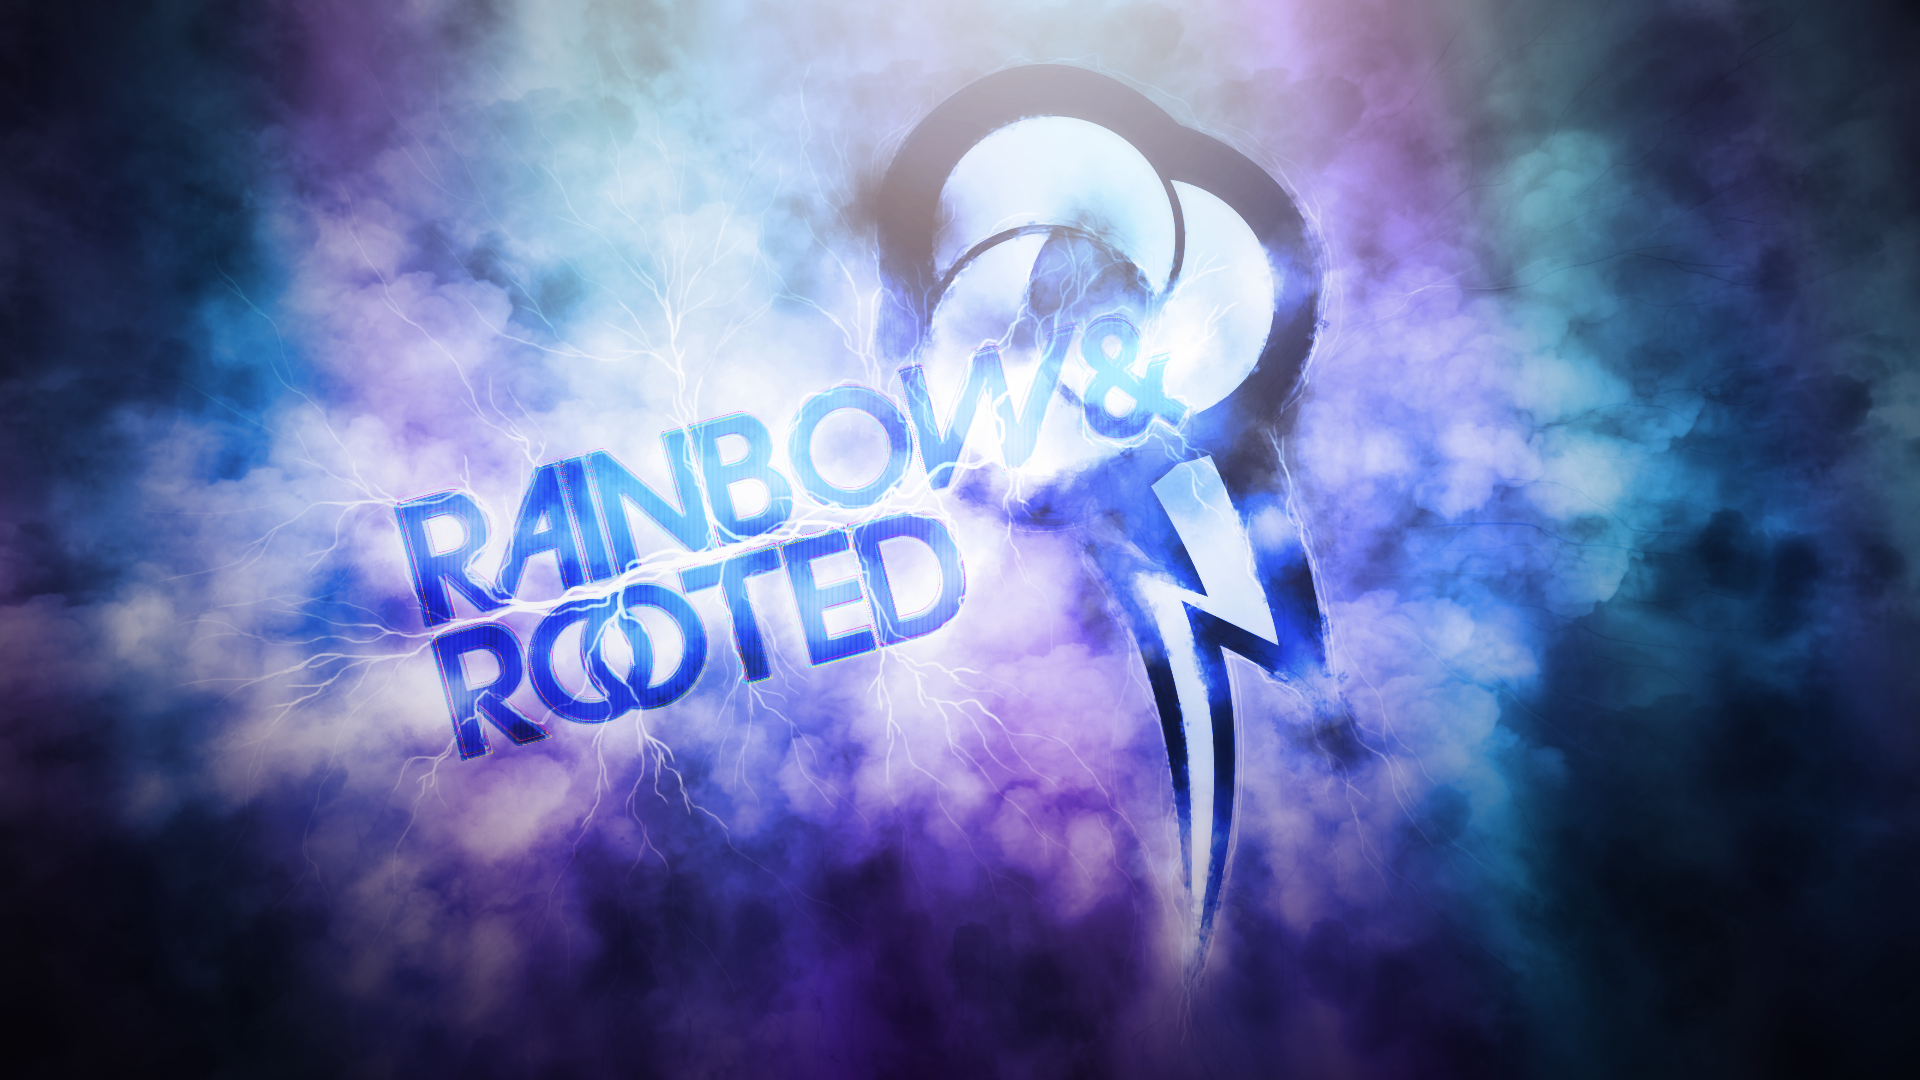 Rainbow 'n' Rooted by SandwichDelta and WMill